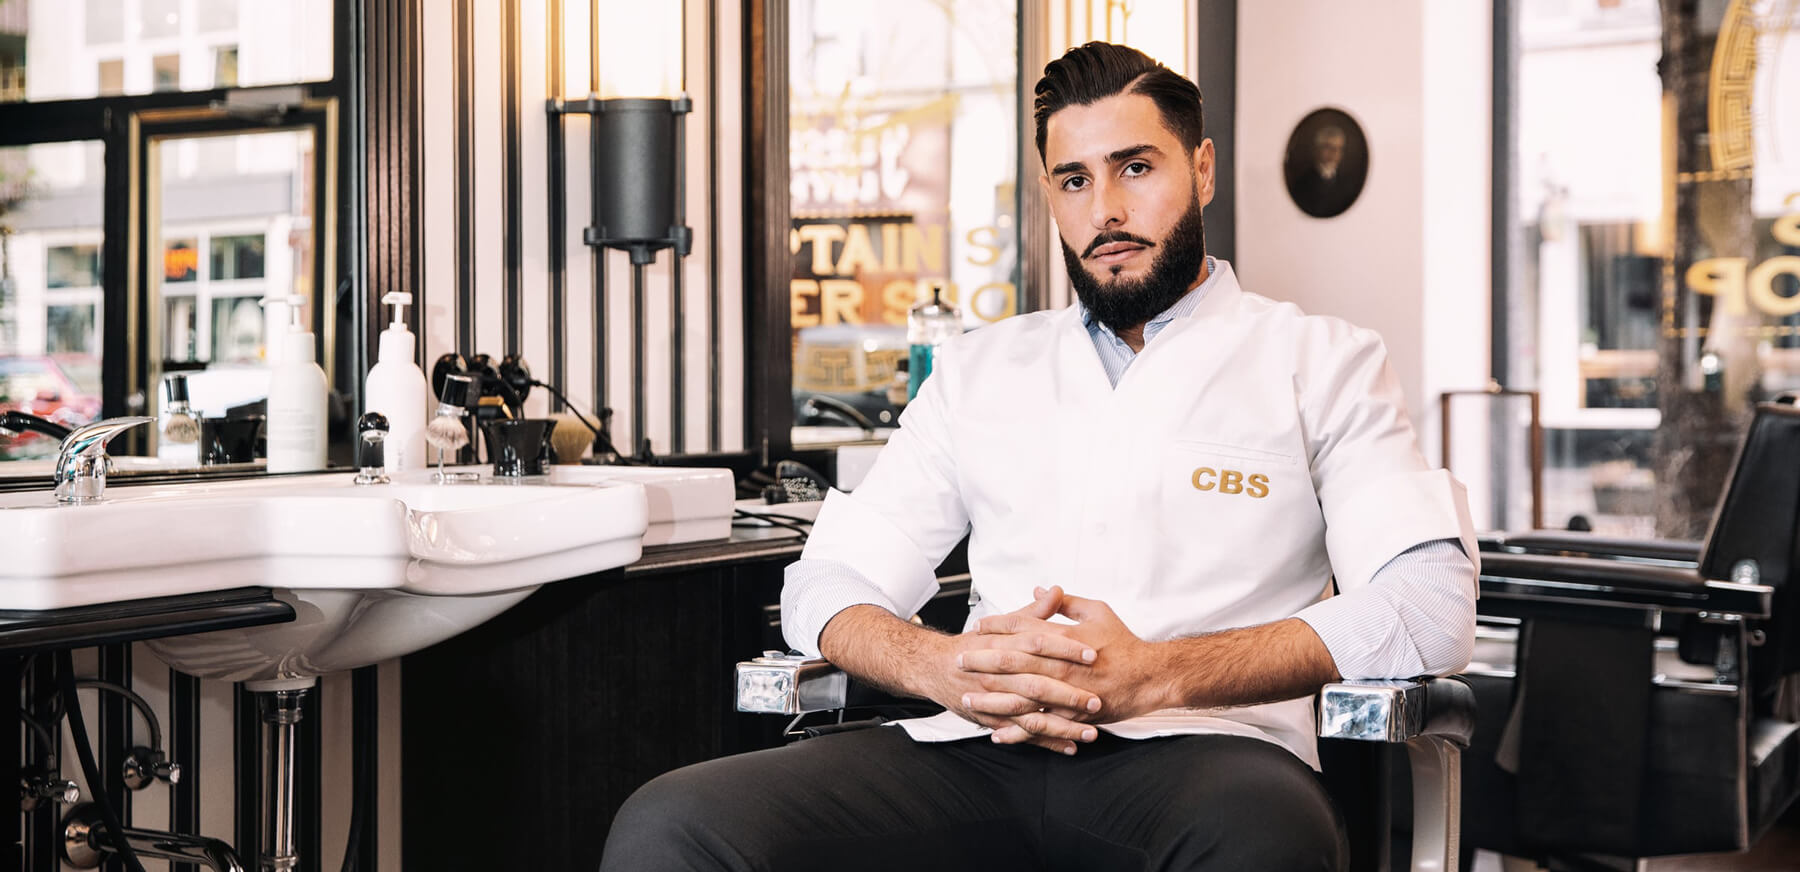 Ahmed Al Musawi Herrenfriseur Barber Captains Barber Shop Düsseldorf